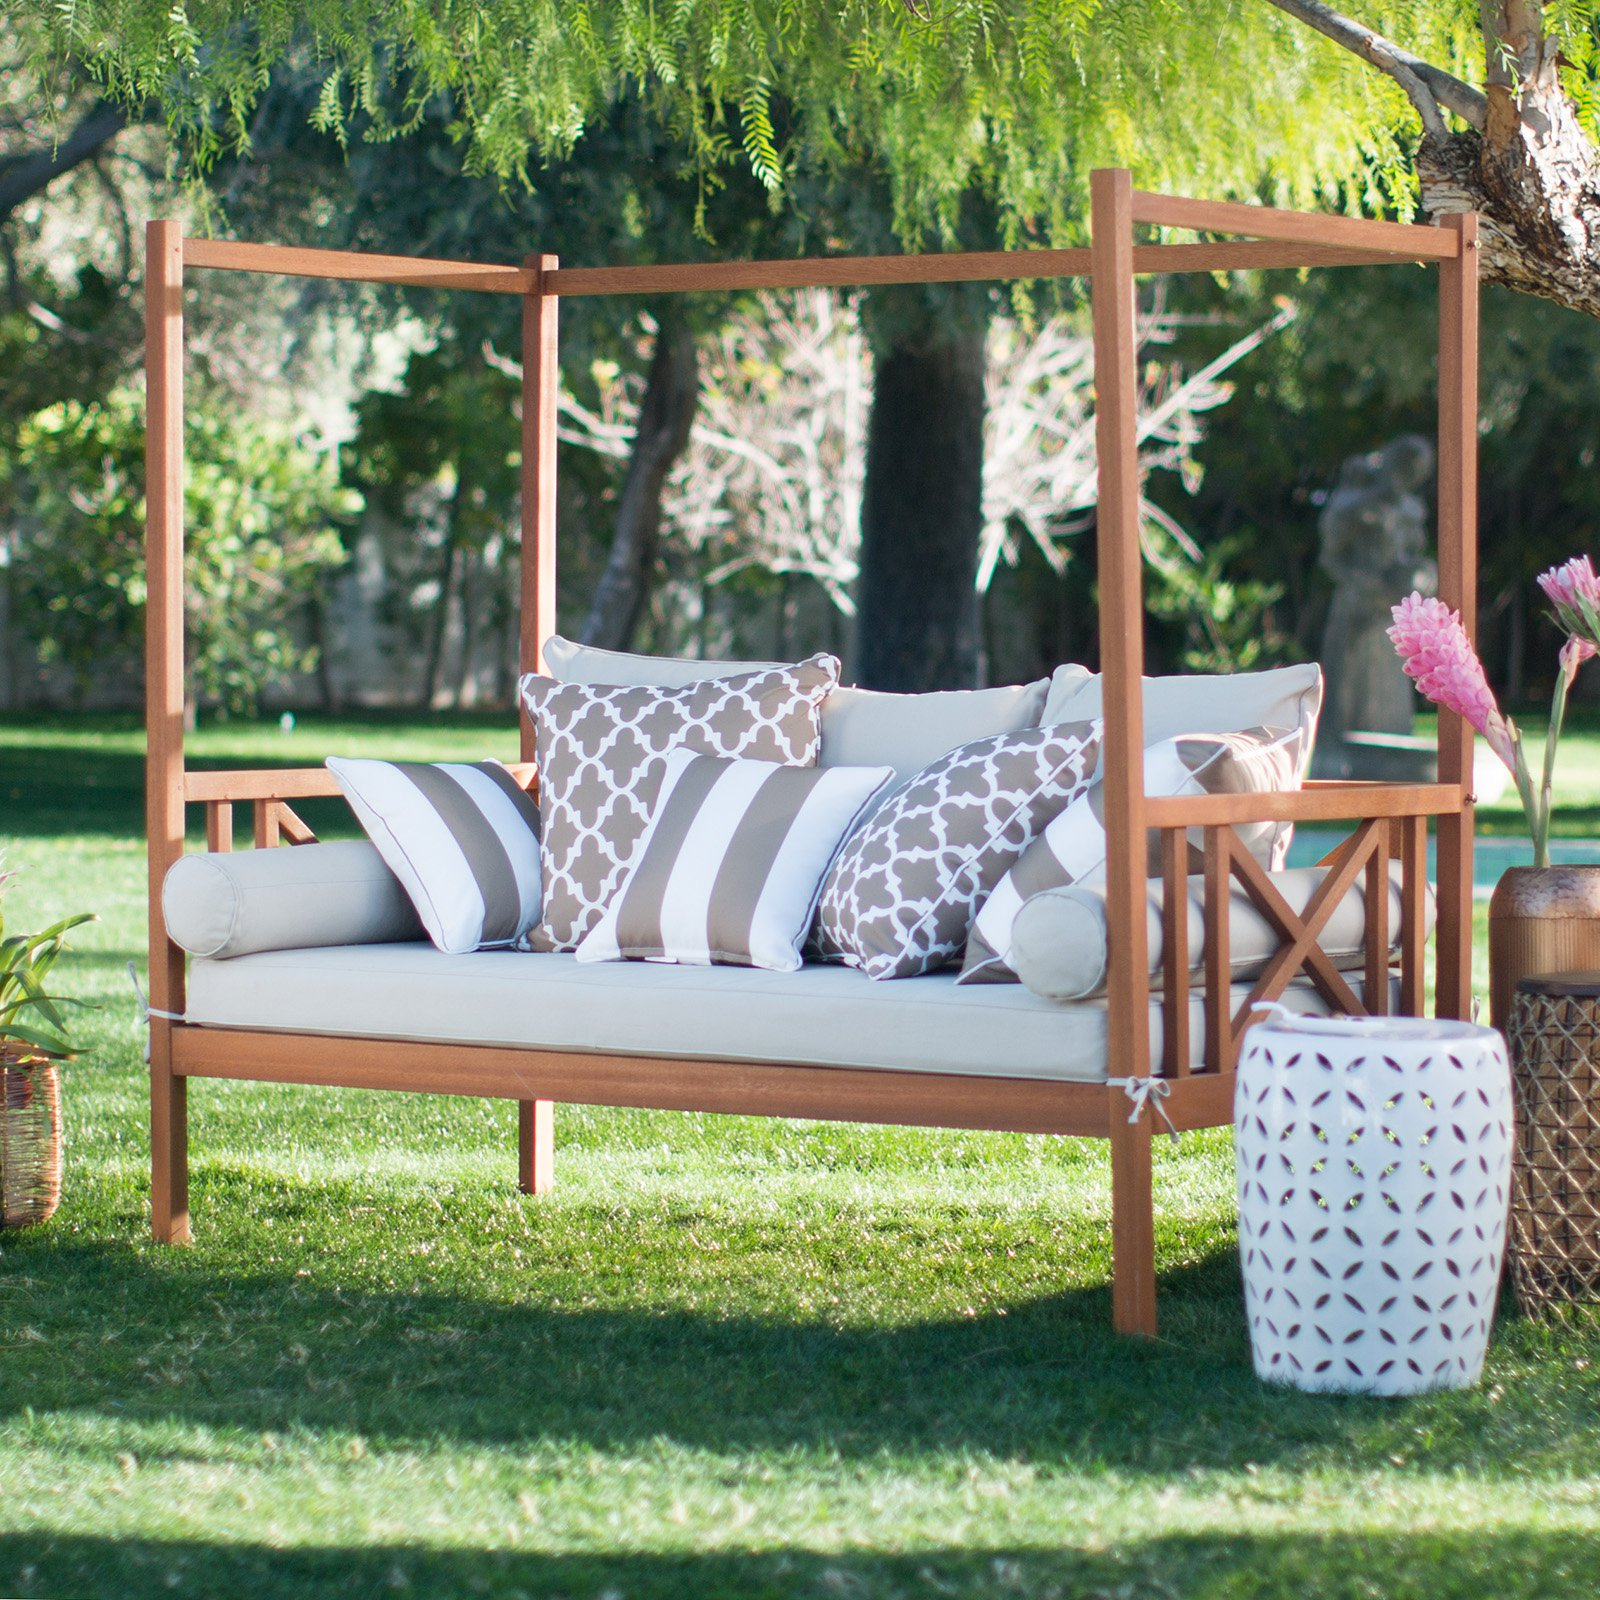 Belham Living Brighton Outdoor Daybed - Walmart.com on Belham Living Brighton Outdoor Daybed  id=78781